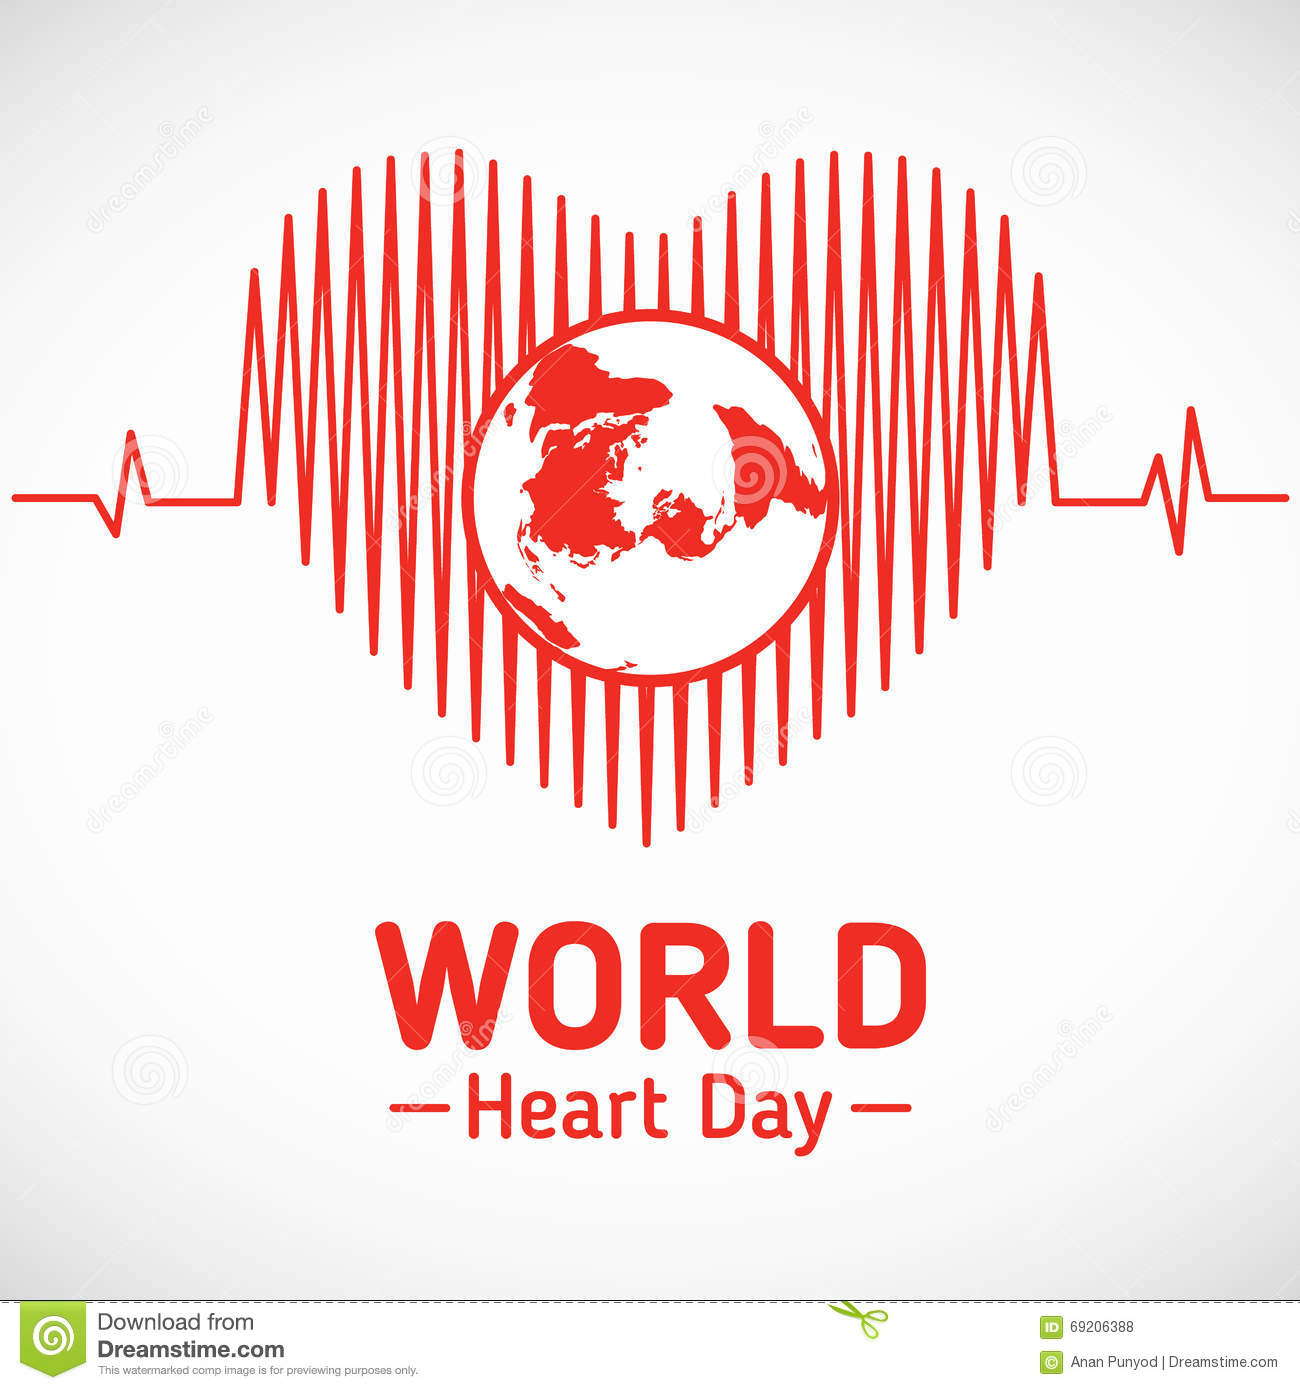 world heart day The world heart foundation organizes world heart day, an international campaign held on september 29 to inform people about cardiovascular diseases, which are the biggest cause of death the day promotes preventative measures to reduce the risk of cardiovascular diseases.